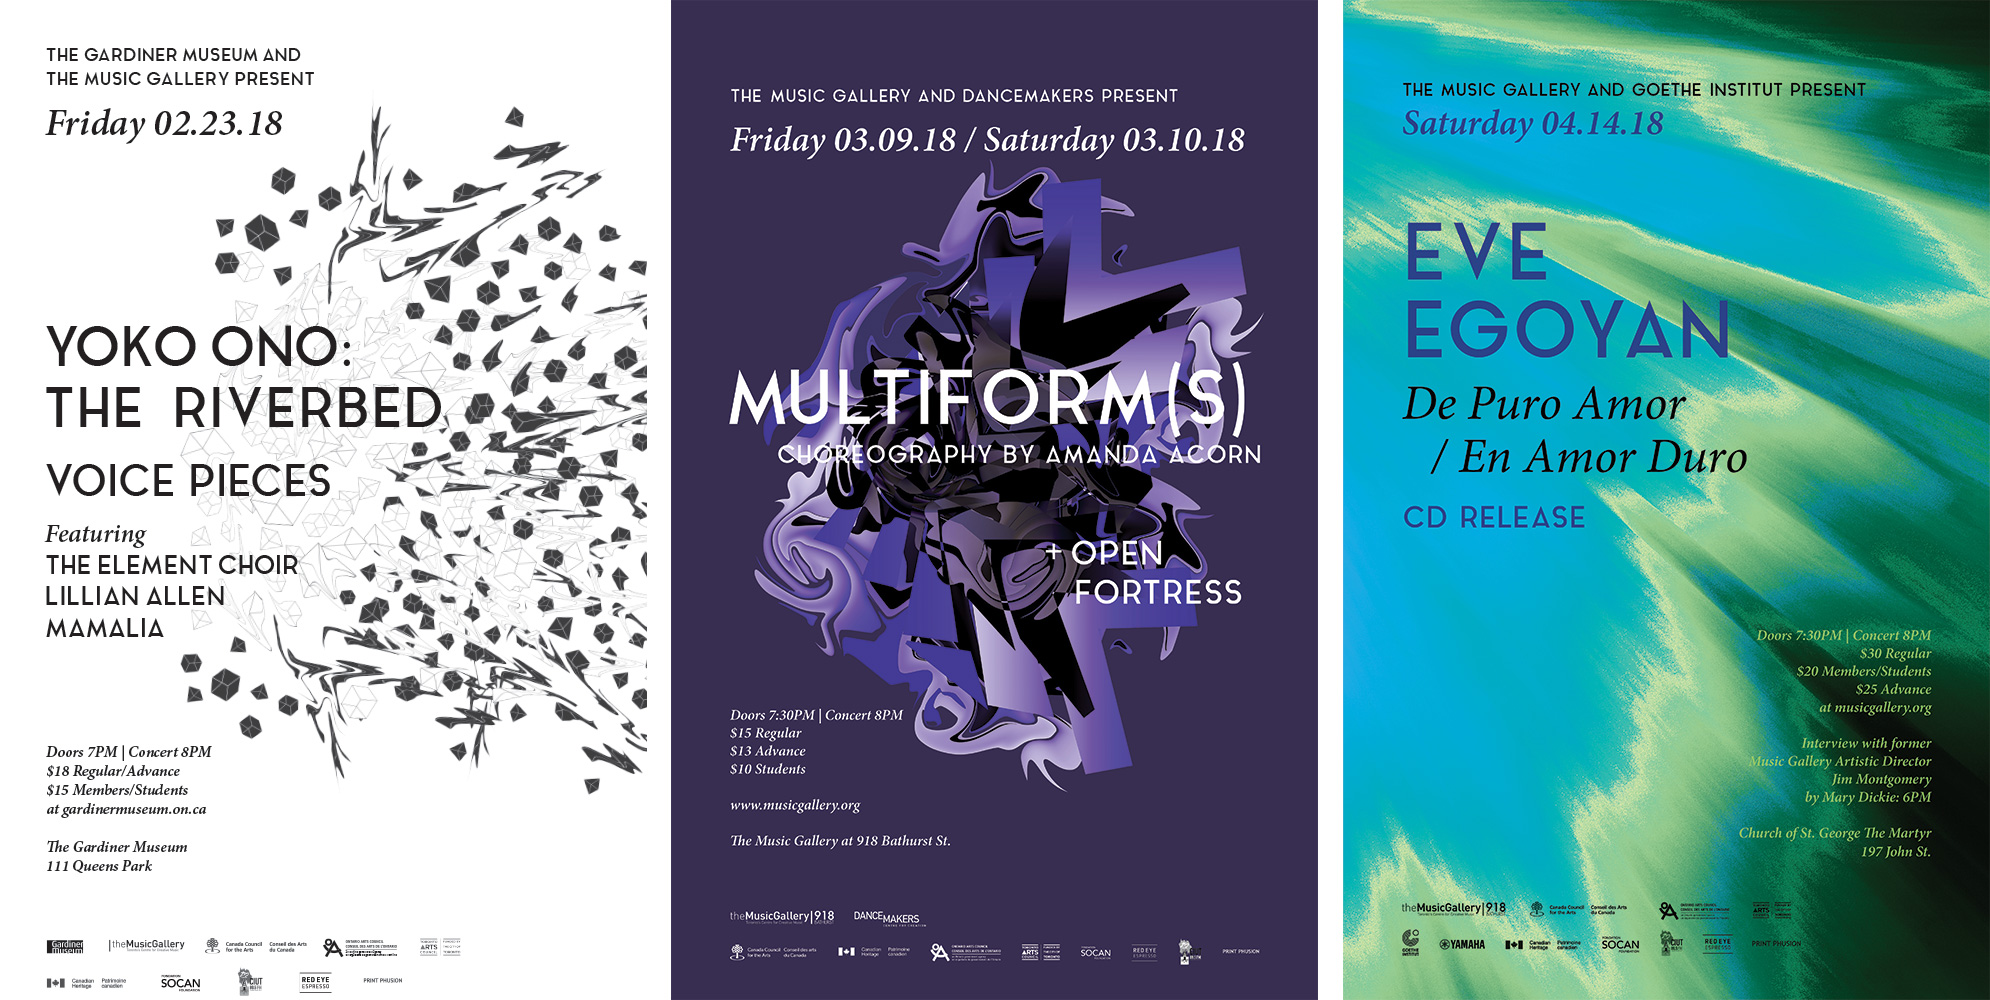 Image of three posters produced for The Music Gallery's 2017-2018 season. The first poster (left) has a white background and shows a series of black figures exploding outwards. The second poster (center) has a purple background and displays an abstract shape of multiple layers folding over itself. The third poster (right) is an abstract background of blue and green shades, giving the appearance of being a portion of the sky or a shoreline.